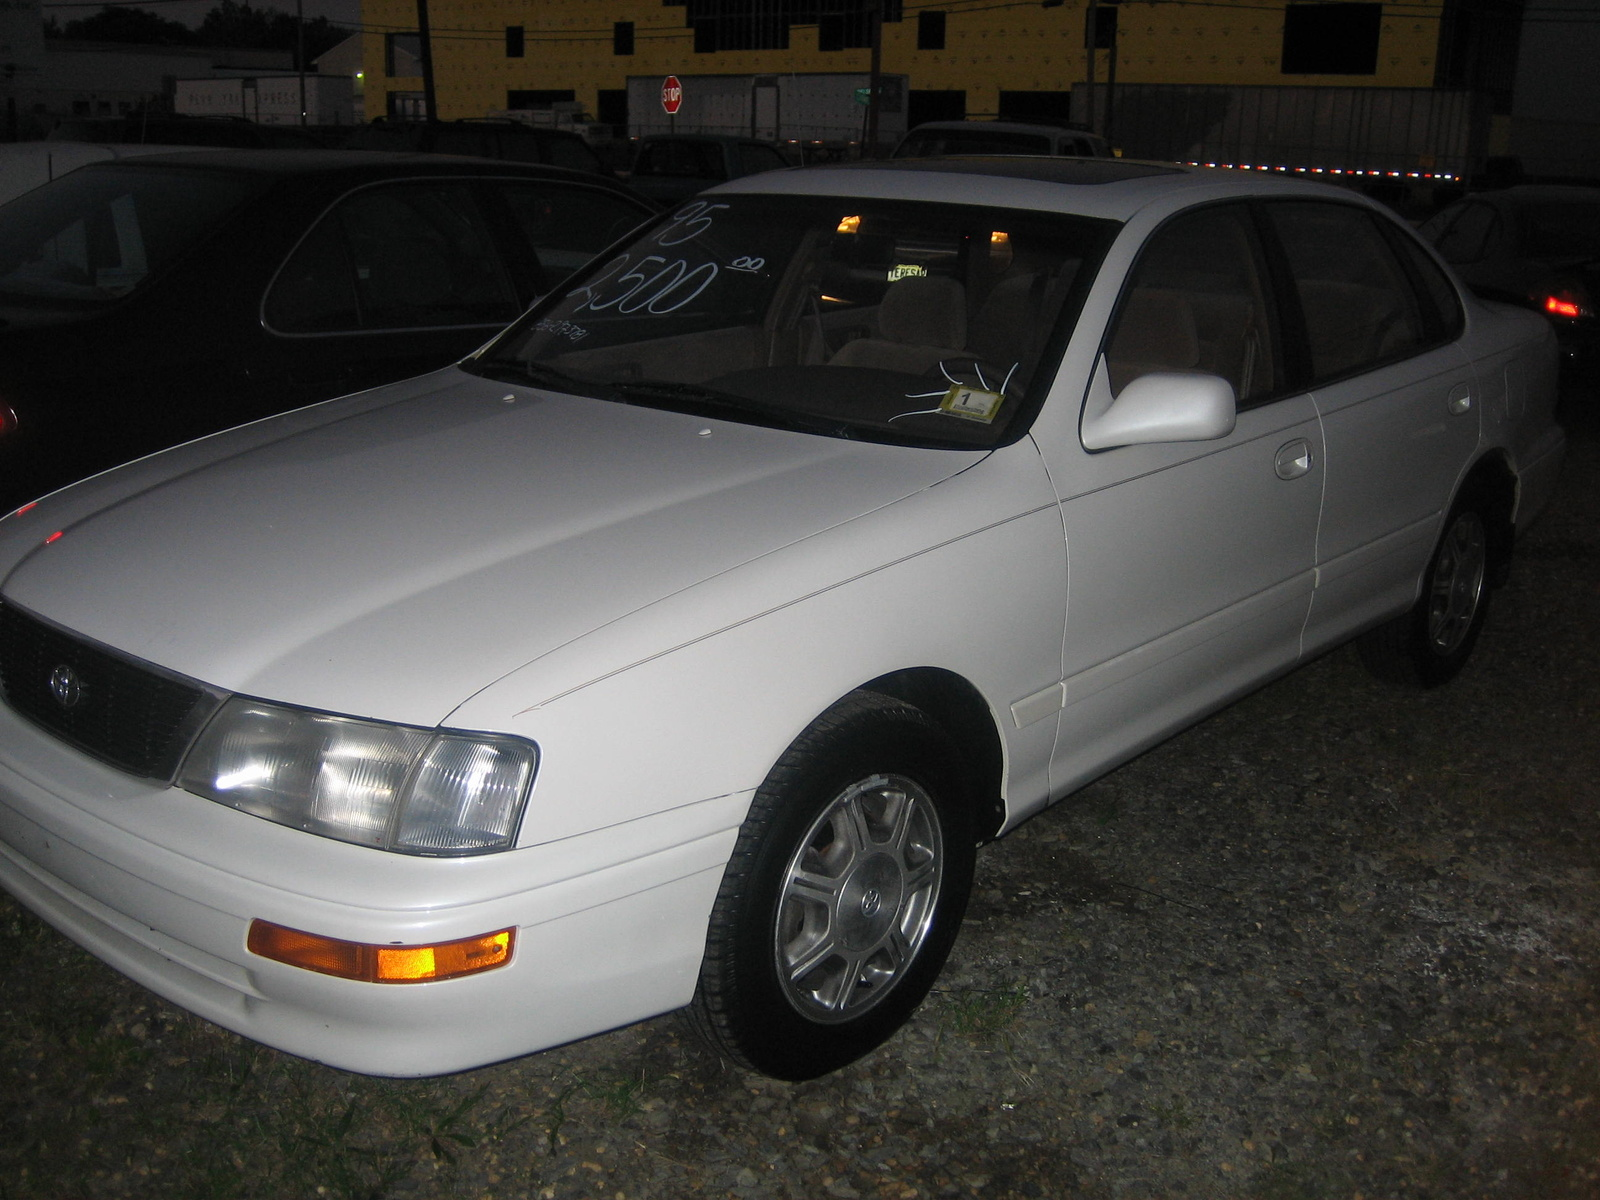 1995 Toyota Avalon 4 Dr XL Sedan picture, exterior